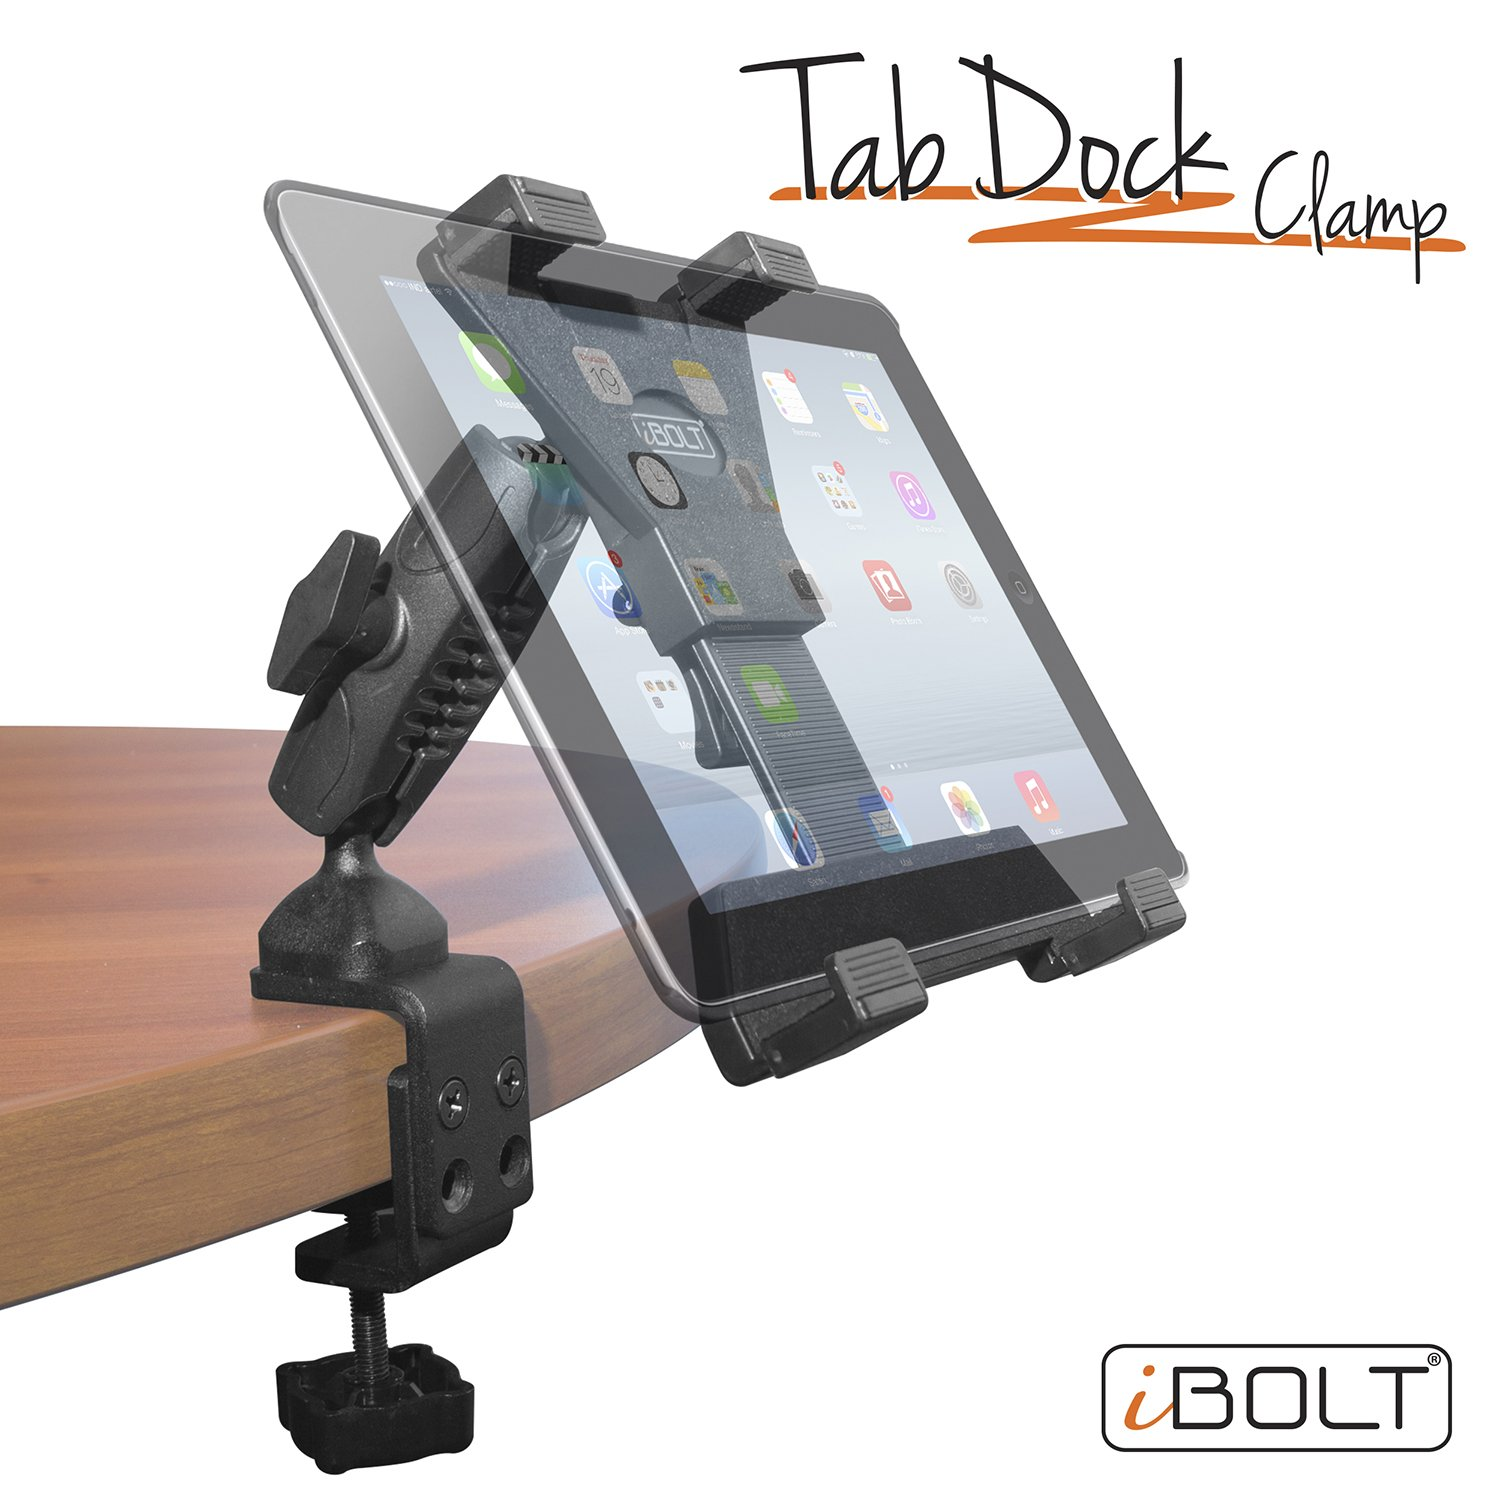 iBOLT TabDock Bizmount Clamp- Heavy Duty Dual-Ball C-Clamp Mount for All 7'' - 10'' Tablets (iPad, Samsung Galaxy Tab, etc.) for Desks, Tables, Wheelchairs, Carts: Great for Homes, Schools, Offices